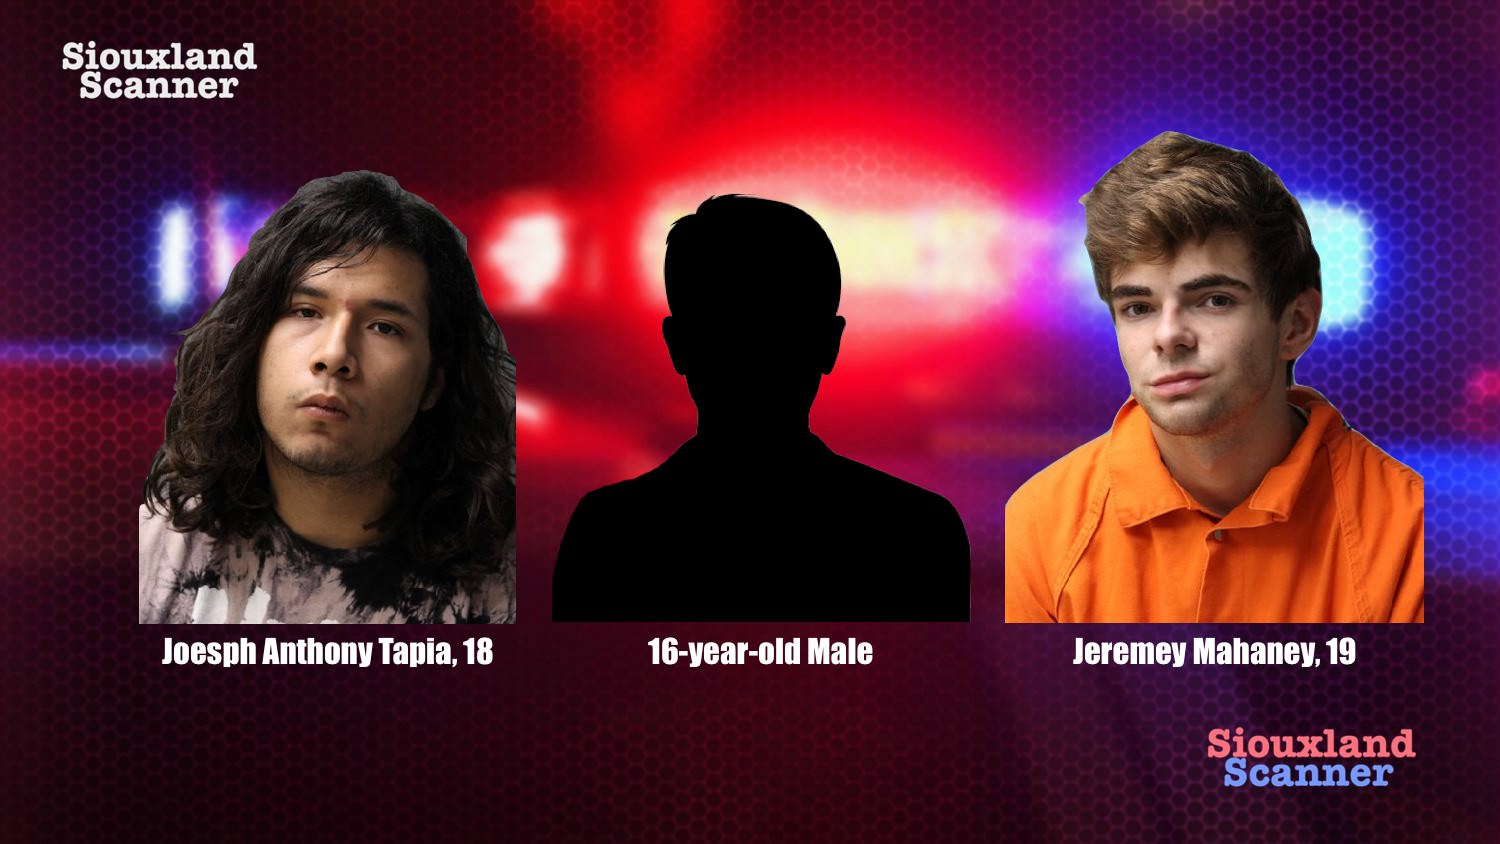 Update Three teens arrested on burglary charges in Sioux City